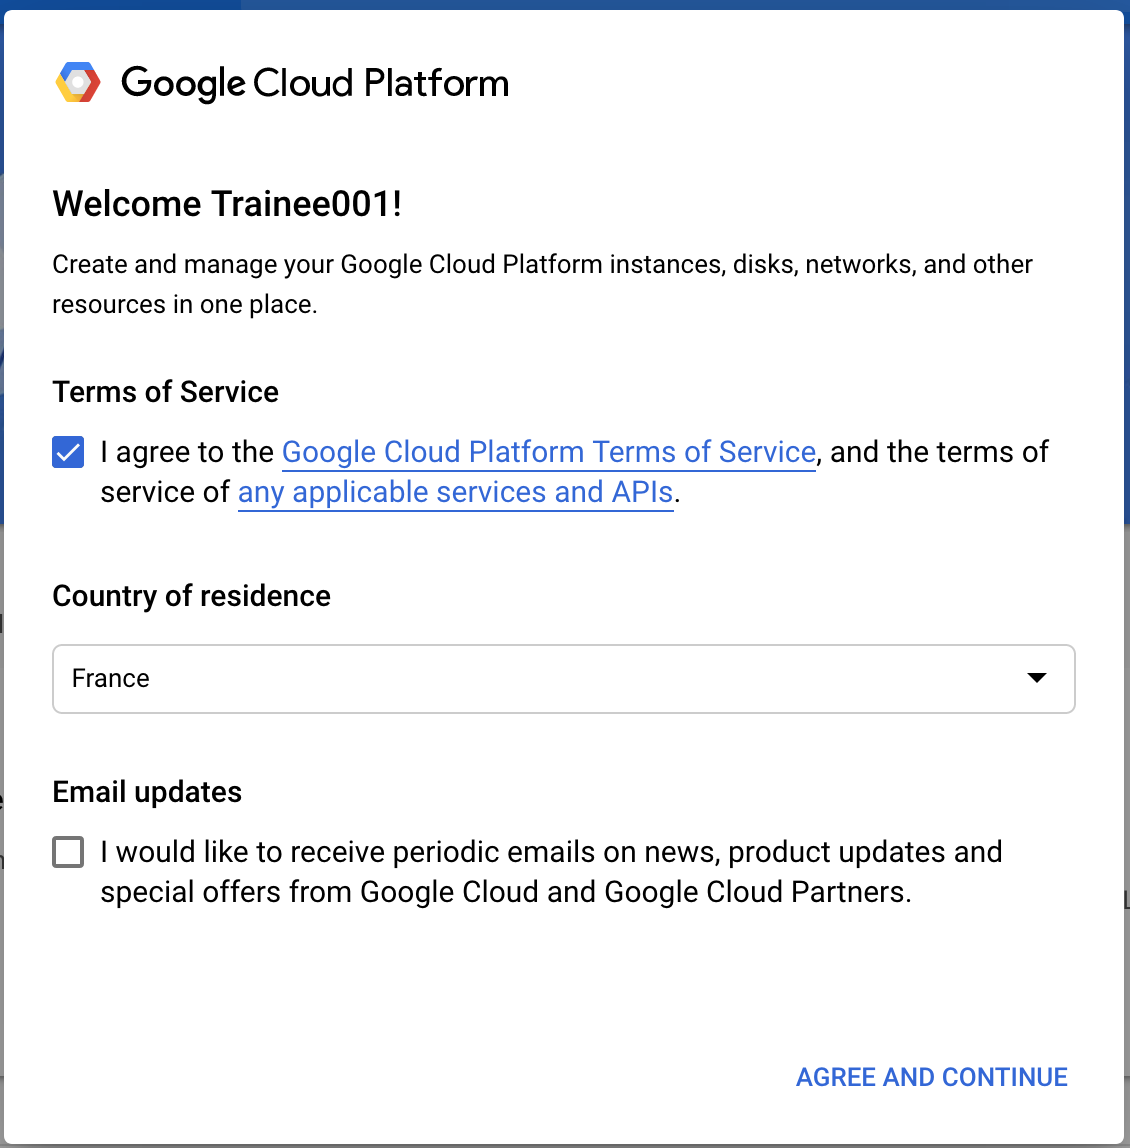 Google Cloud Terms of Service